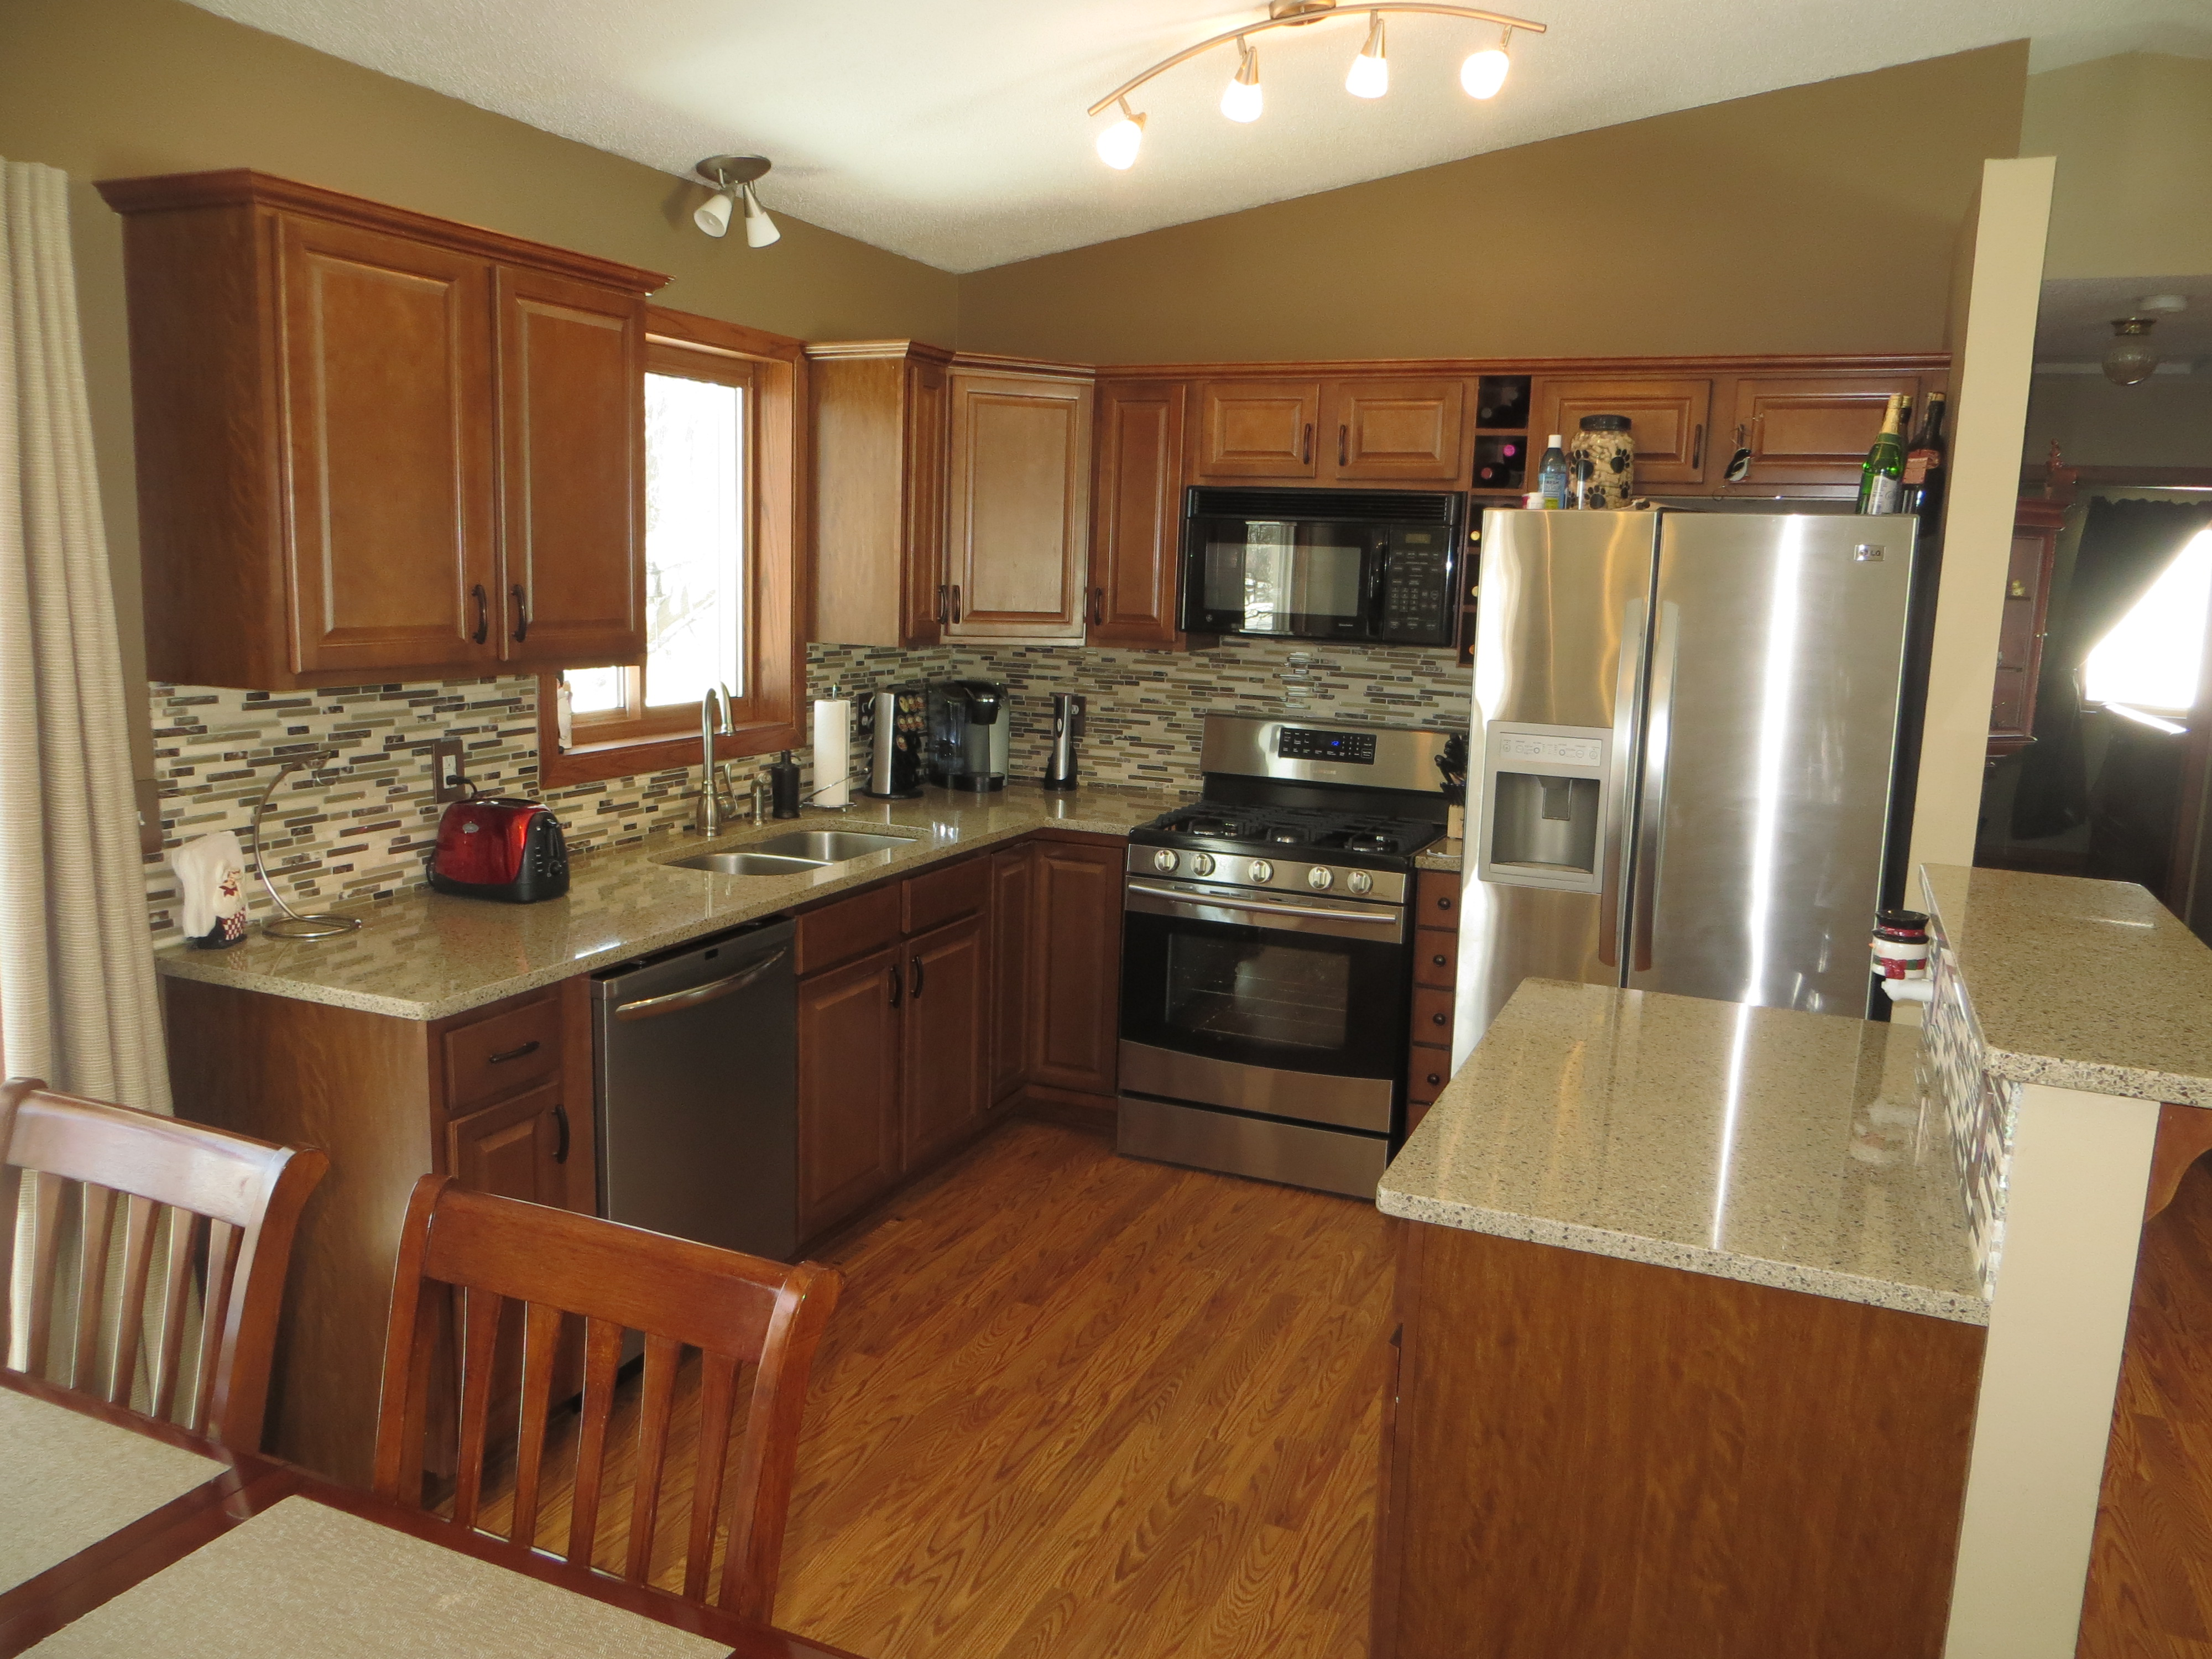 Split Foyer House For Sale : Gorgeous kitchen in split entry home for sale ramsey